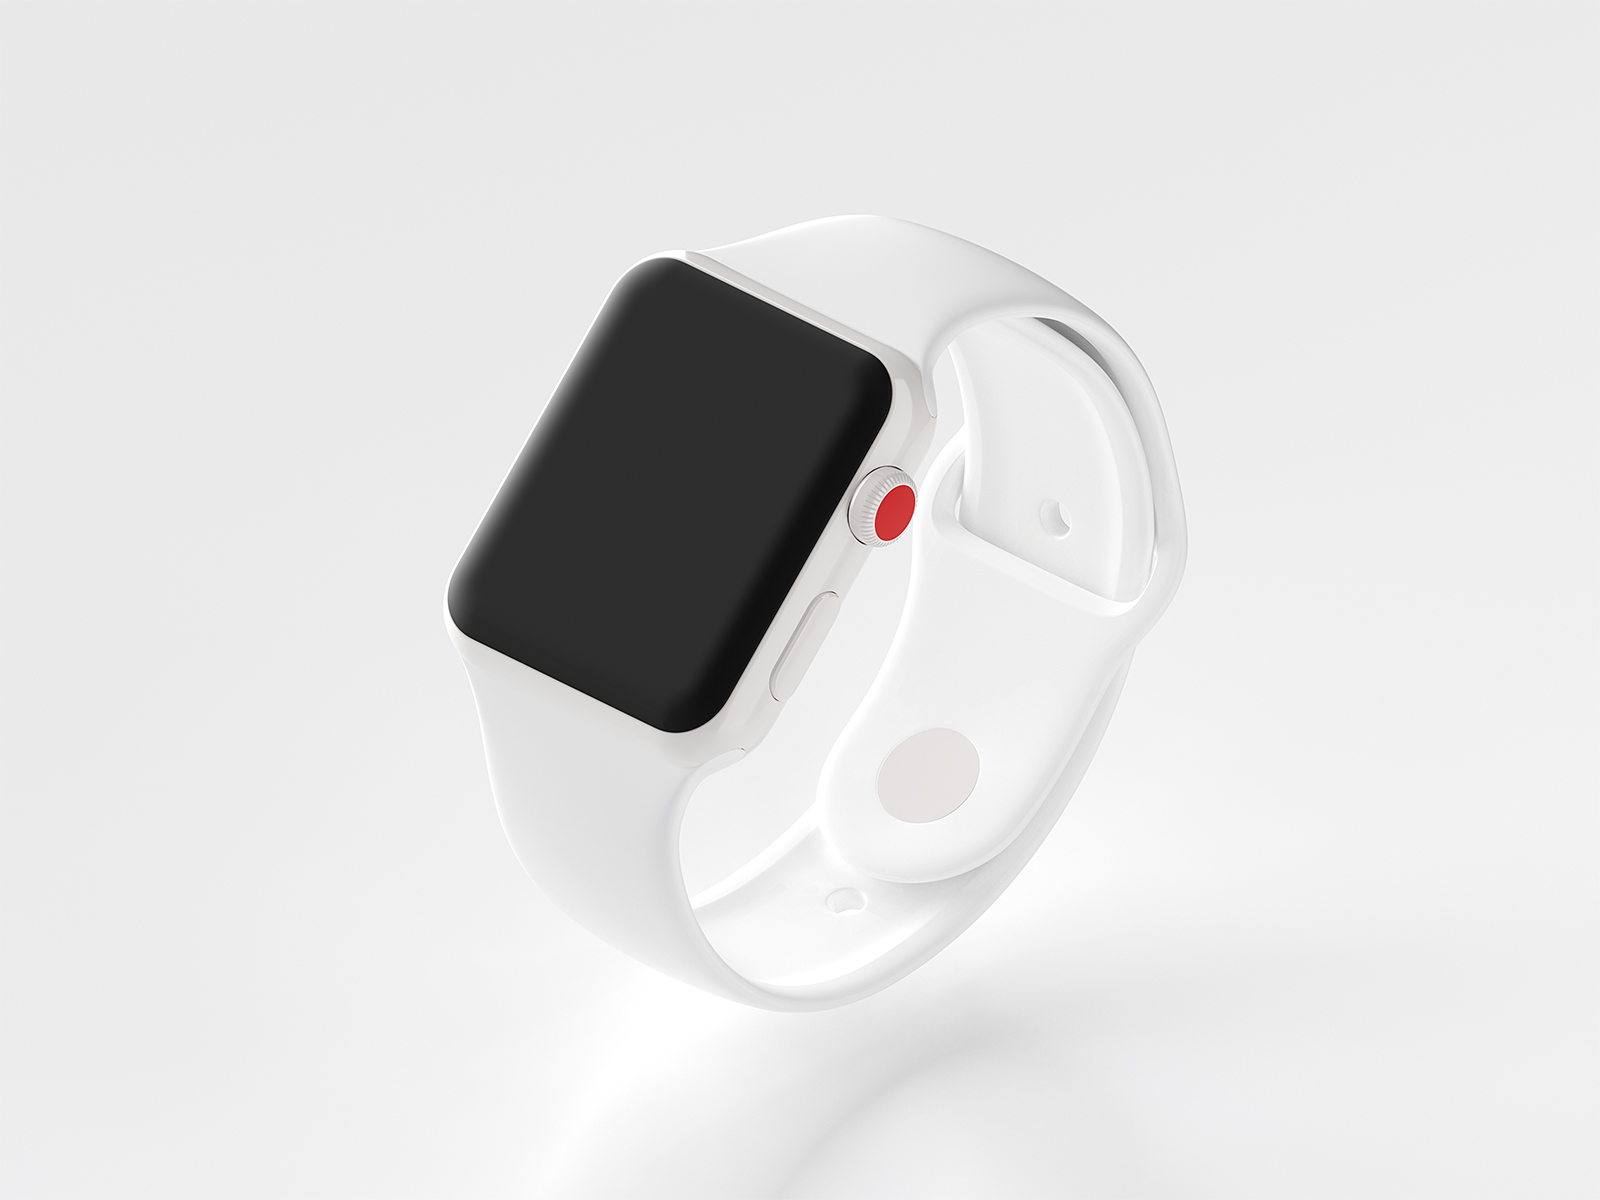 Ceramic Apple Watch Series 3 Mockup